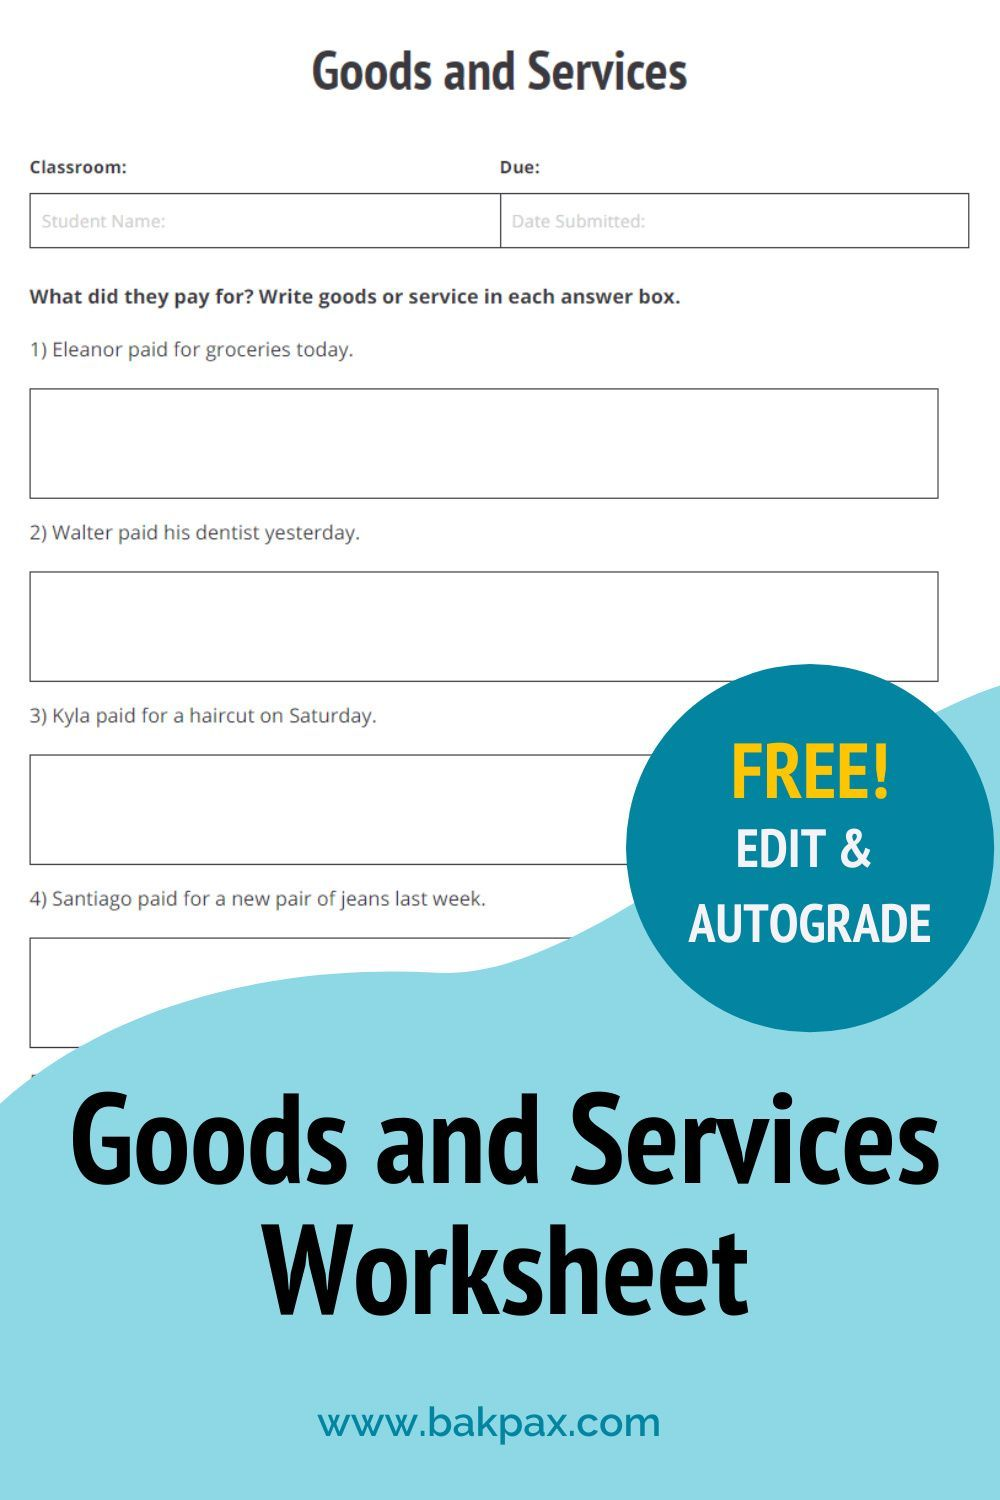 Free Goods And Services Social Studies Worksheet Social Studies Worksheets Social Studies Goods And Services